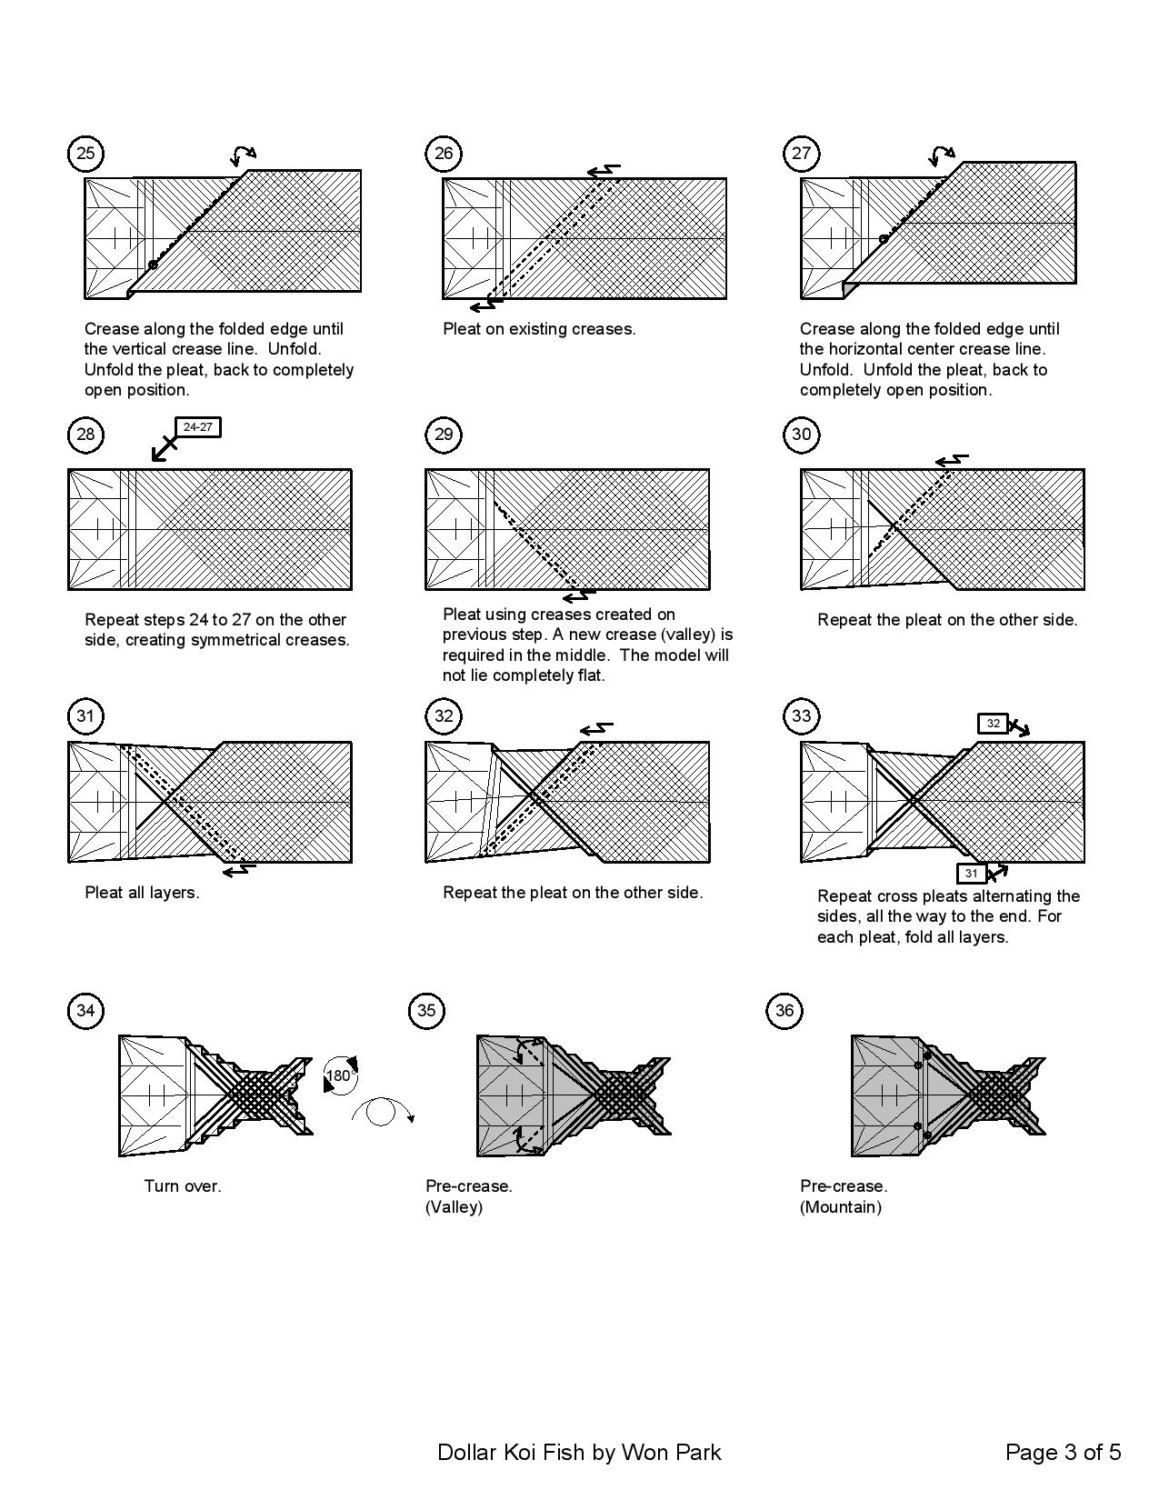 KOI FISH Diagram (3 of 5) Money Origami Dollar Bill Art ... - photo#49